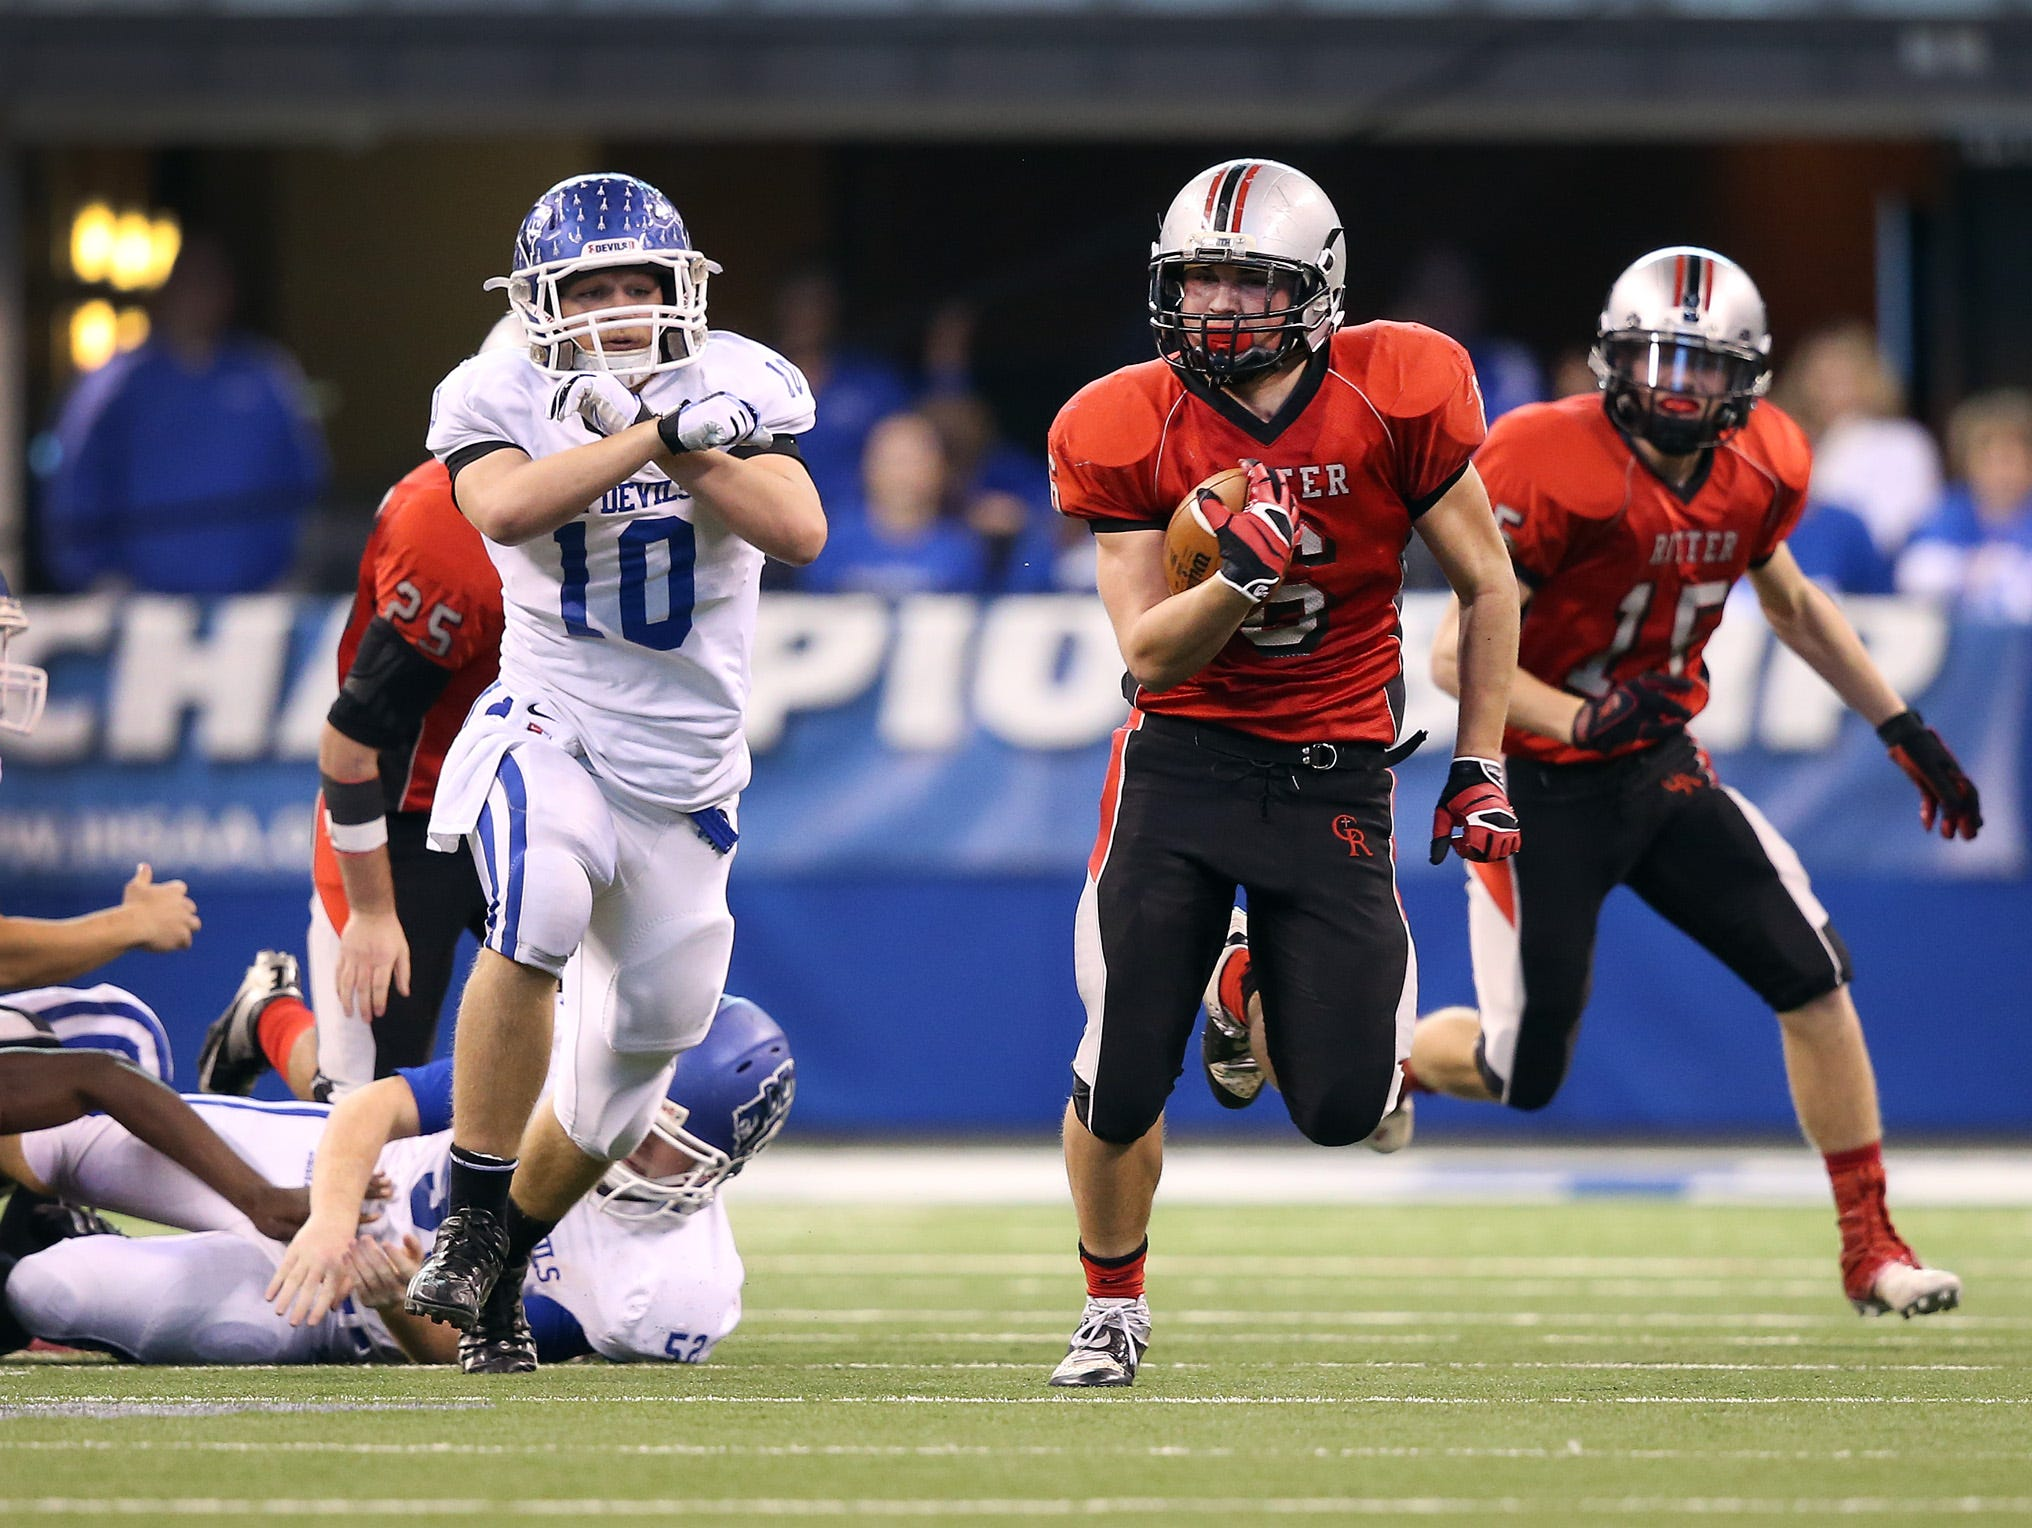 Cardinal Ritter's Tommy Waites runs back a kickoff return 89-yards for a touchdown in the 2013 IHSAA Class 2A football championship game.